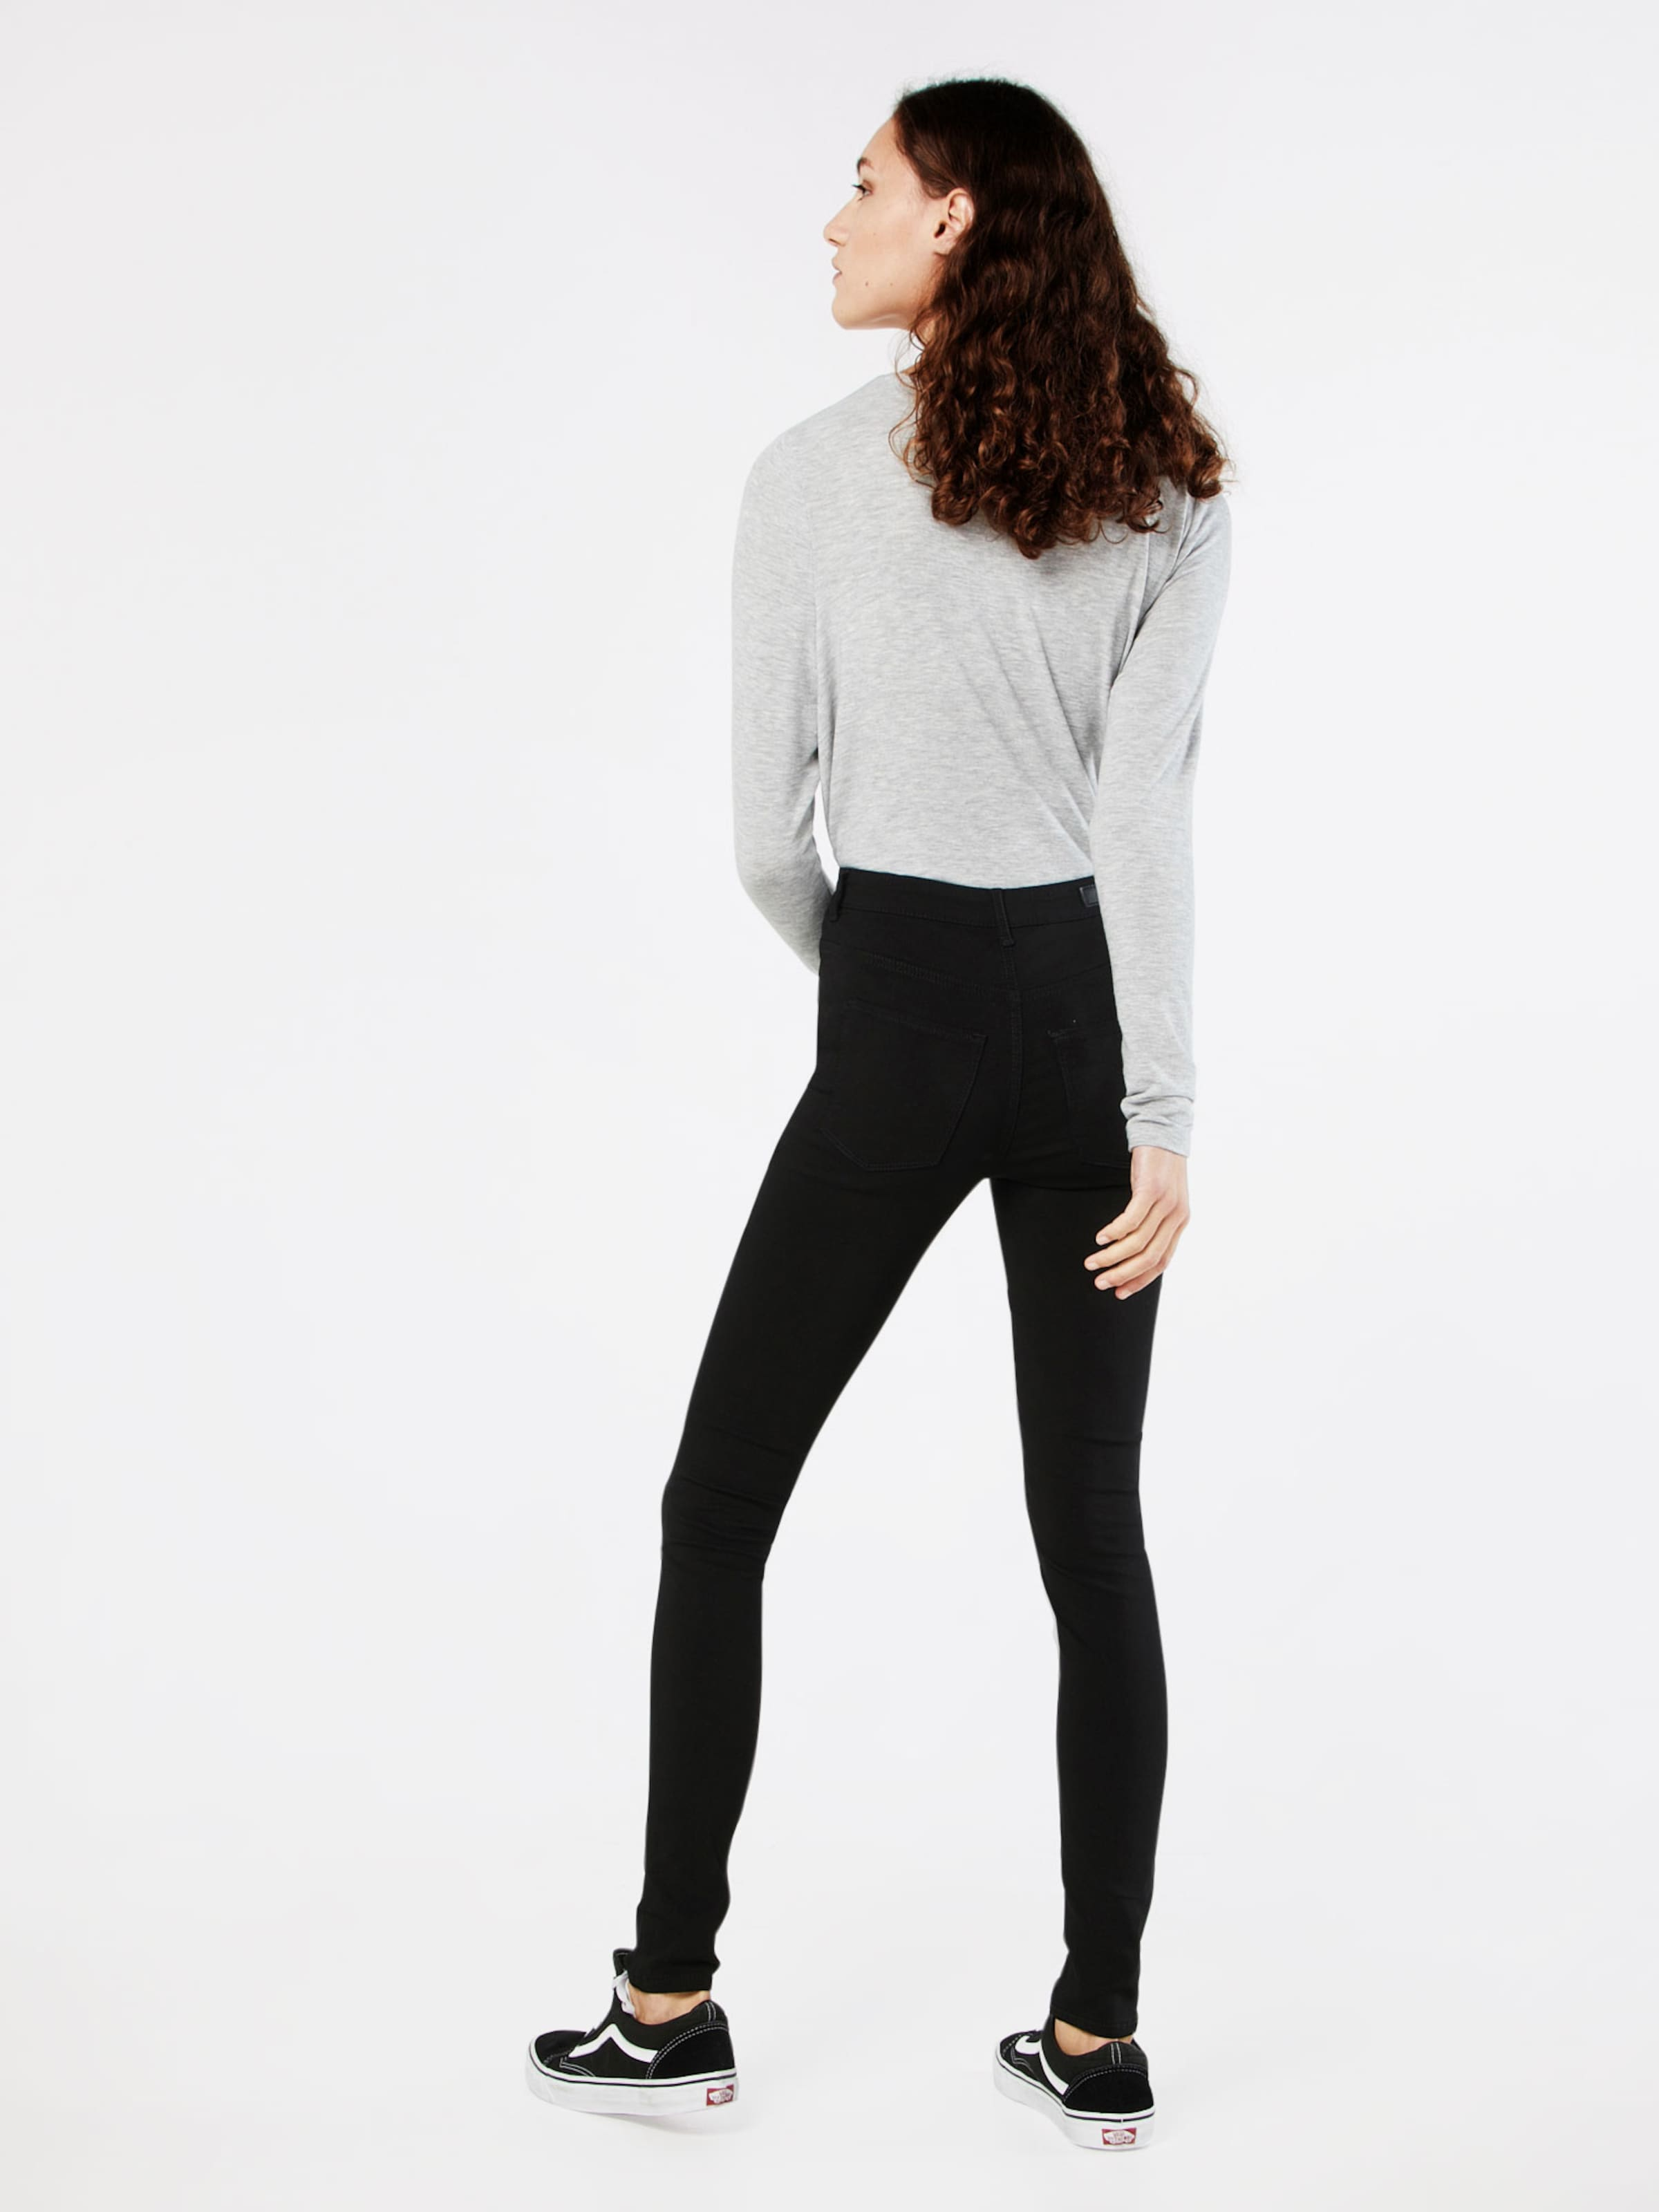 'highskin Wear' En Pieces Jeggings Noir rxBCodeW